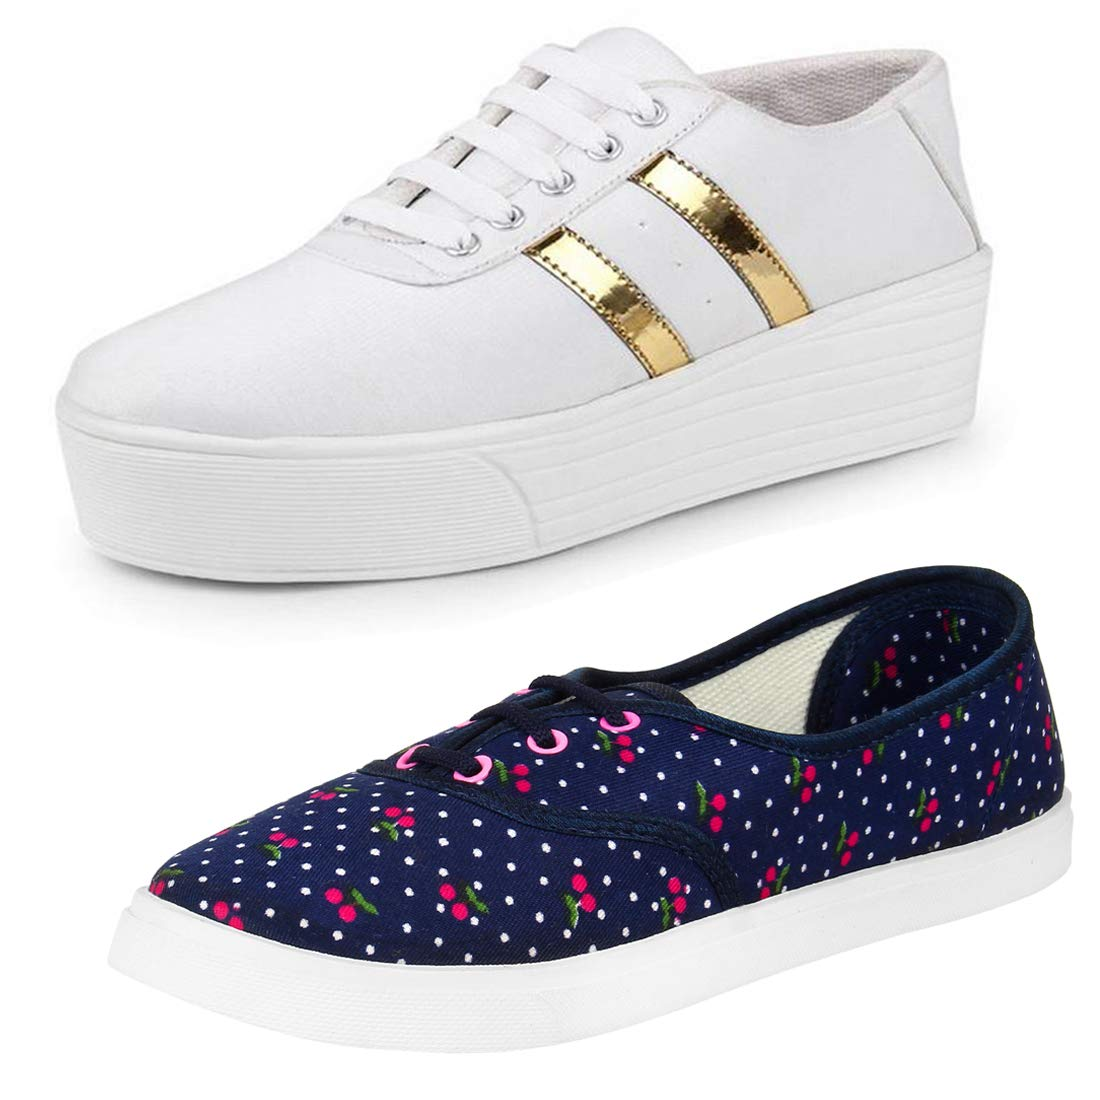 Designer Casual Sneakers Shoes